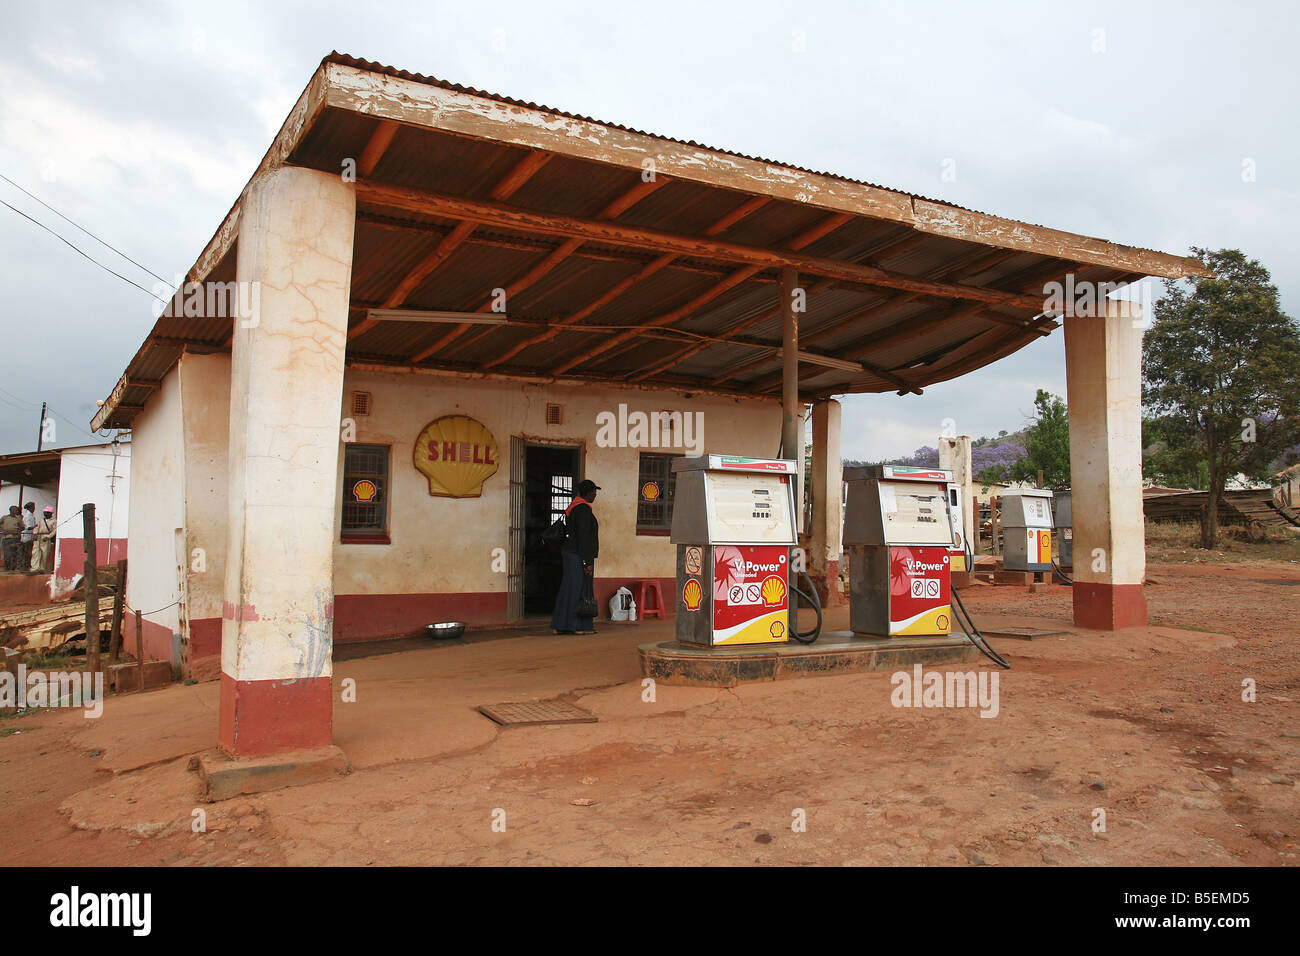 Shell petrol station, Gege, Swaziland, Africa - Stock Image